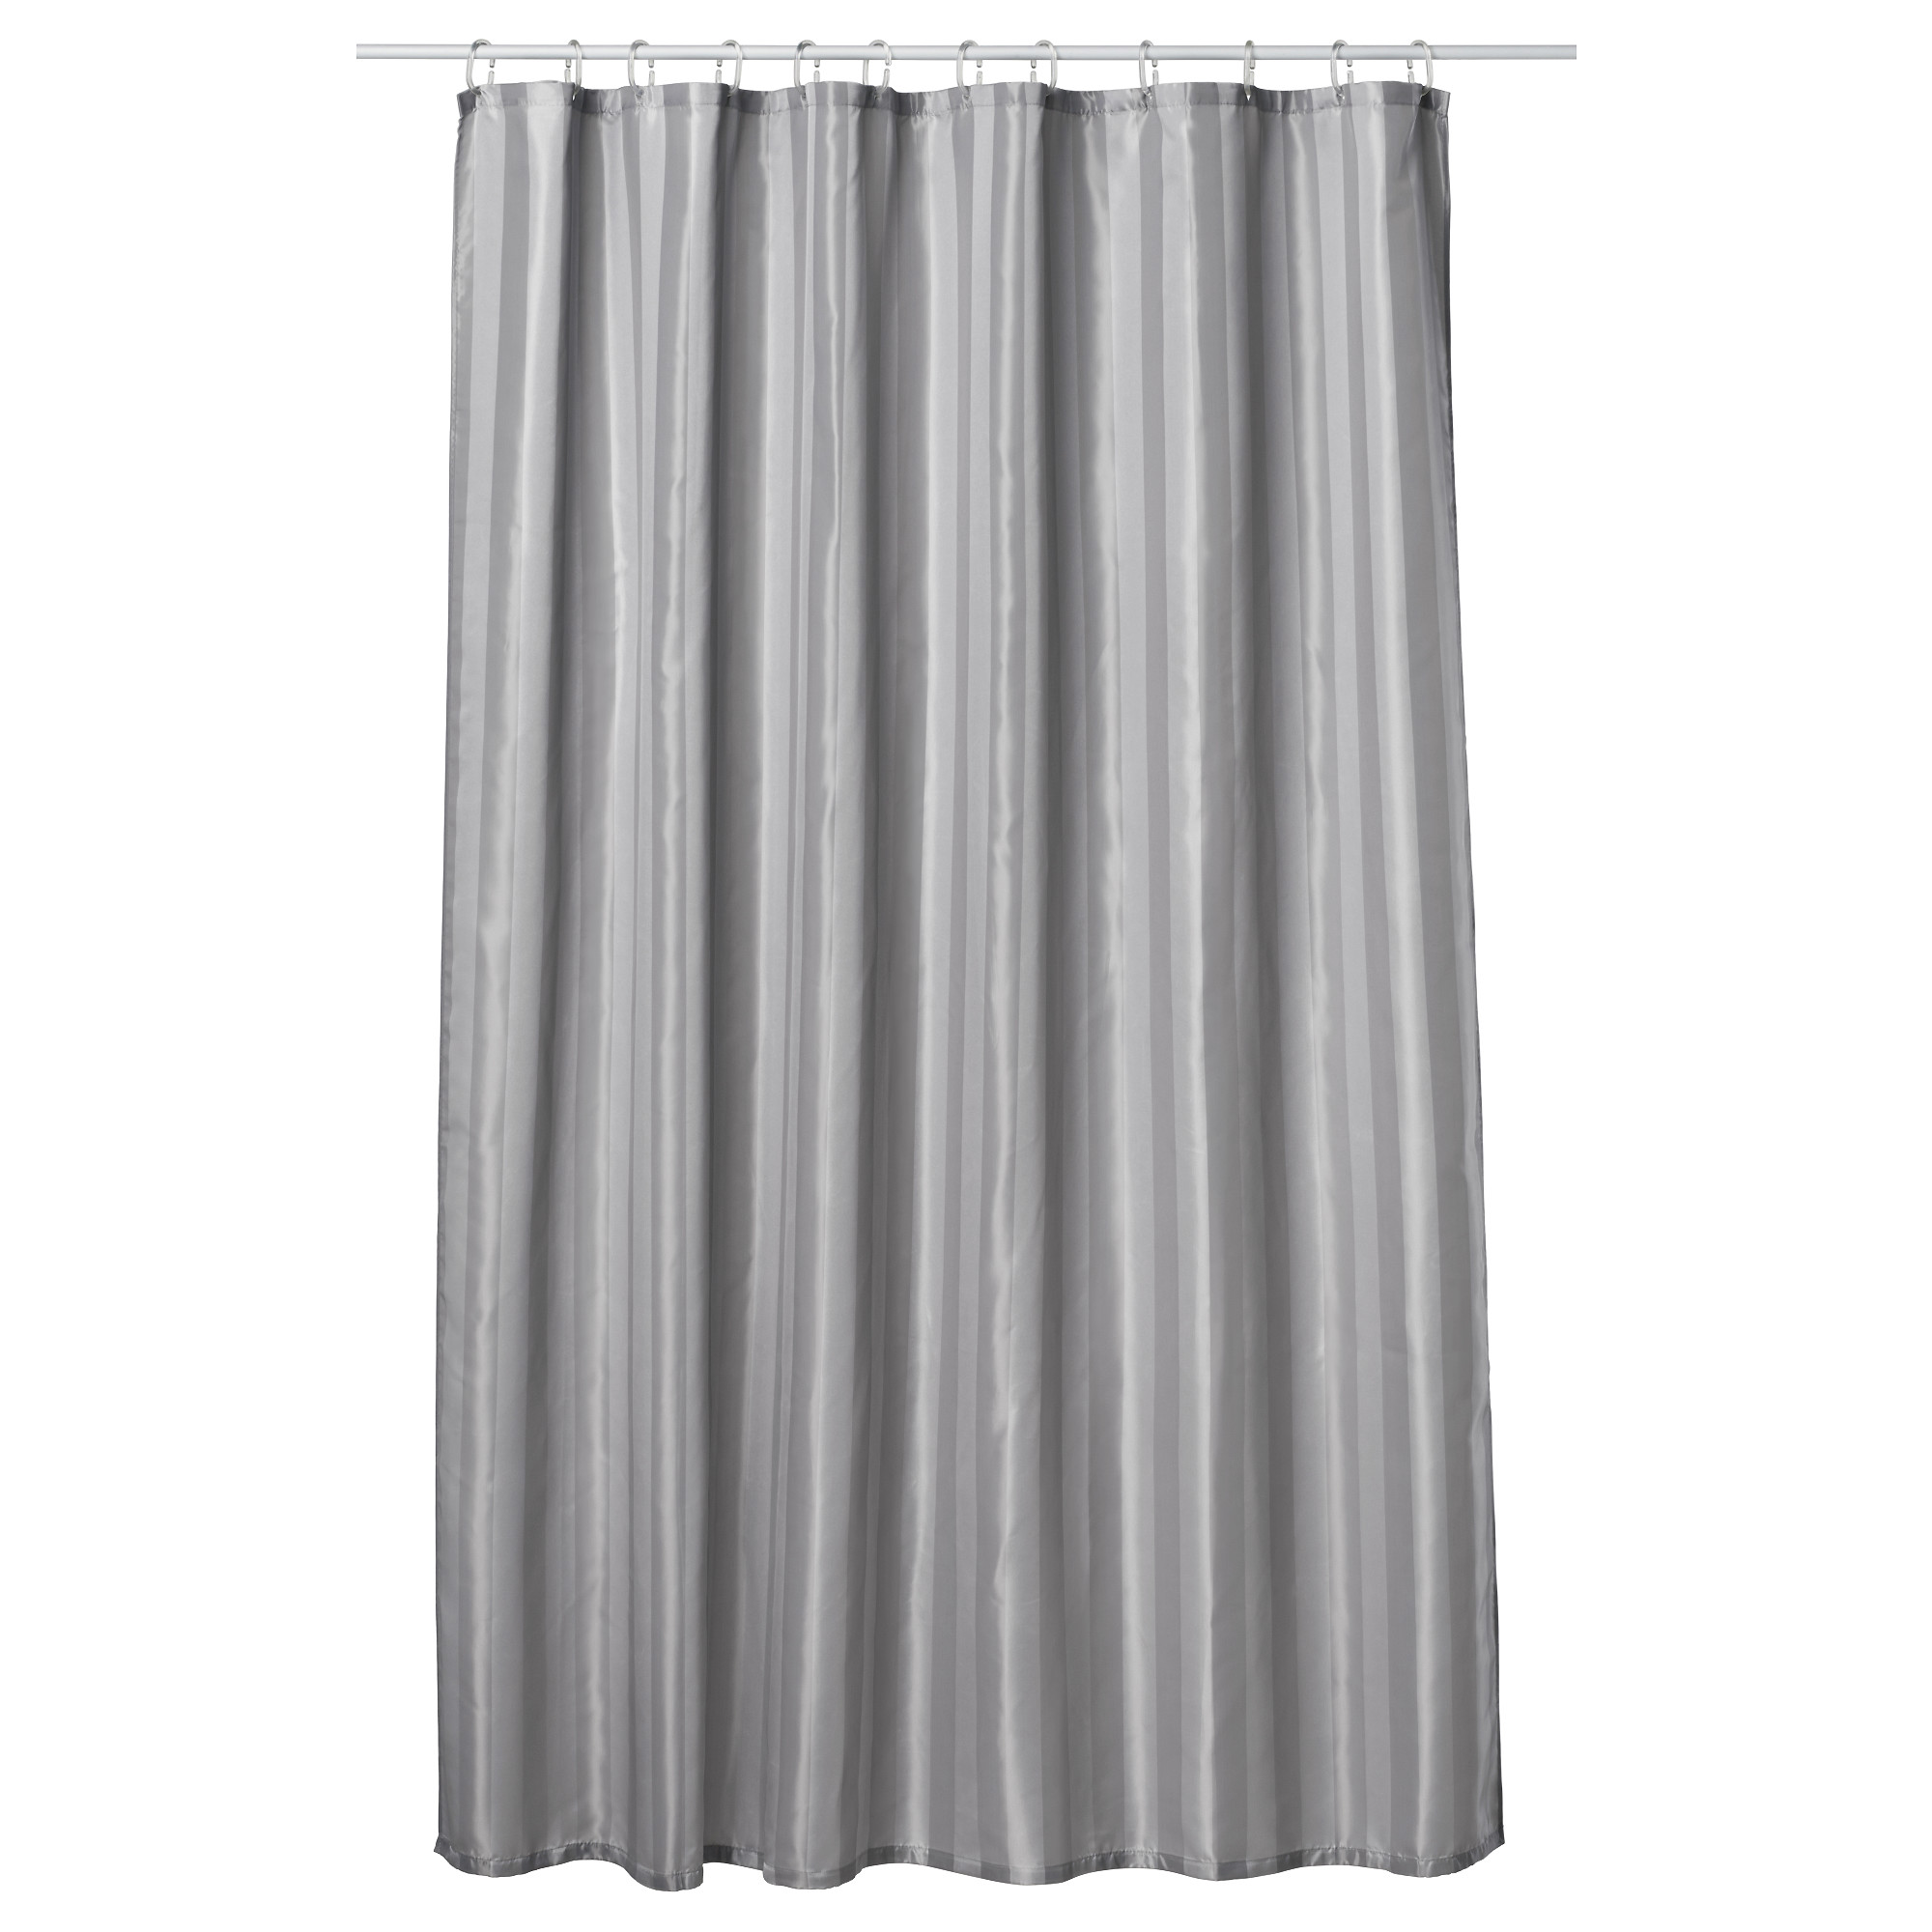 Ikea Shower Curtain | Grey and White Shower Curtains | Boys Shower Curtains